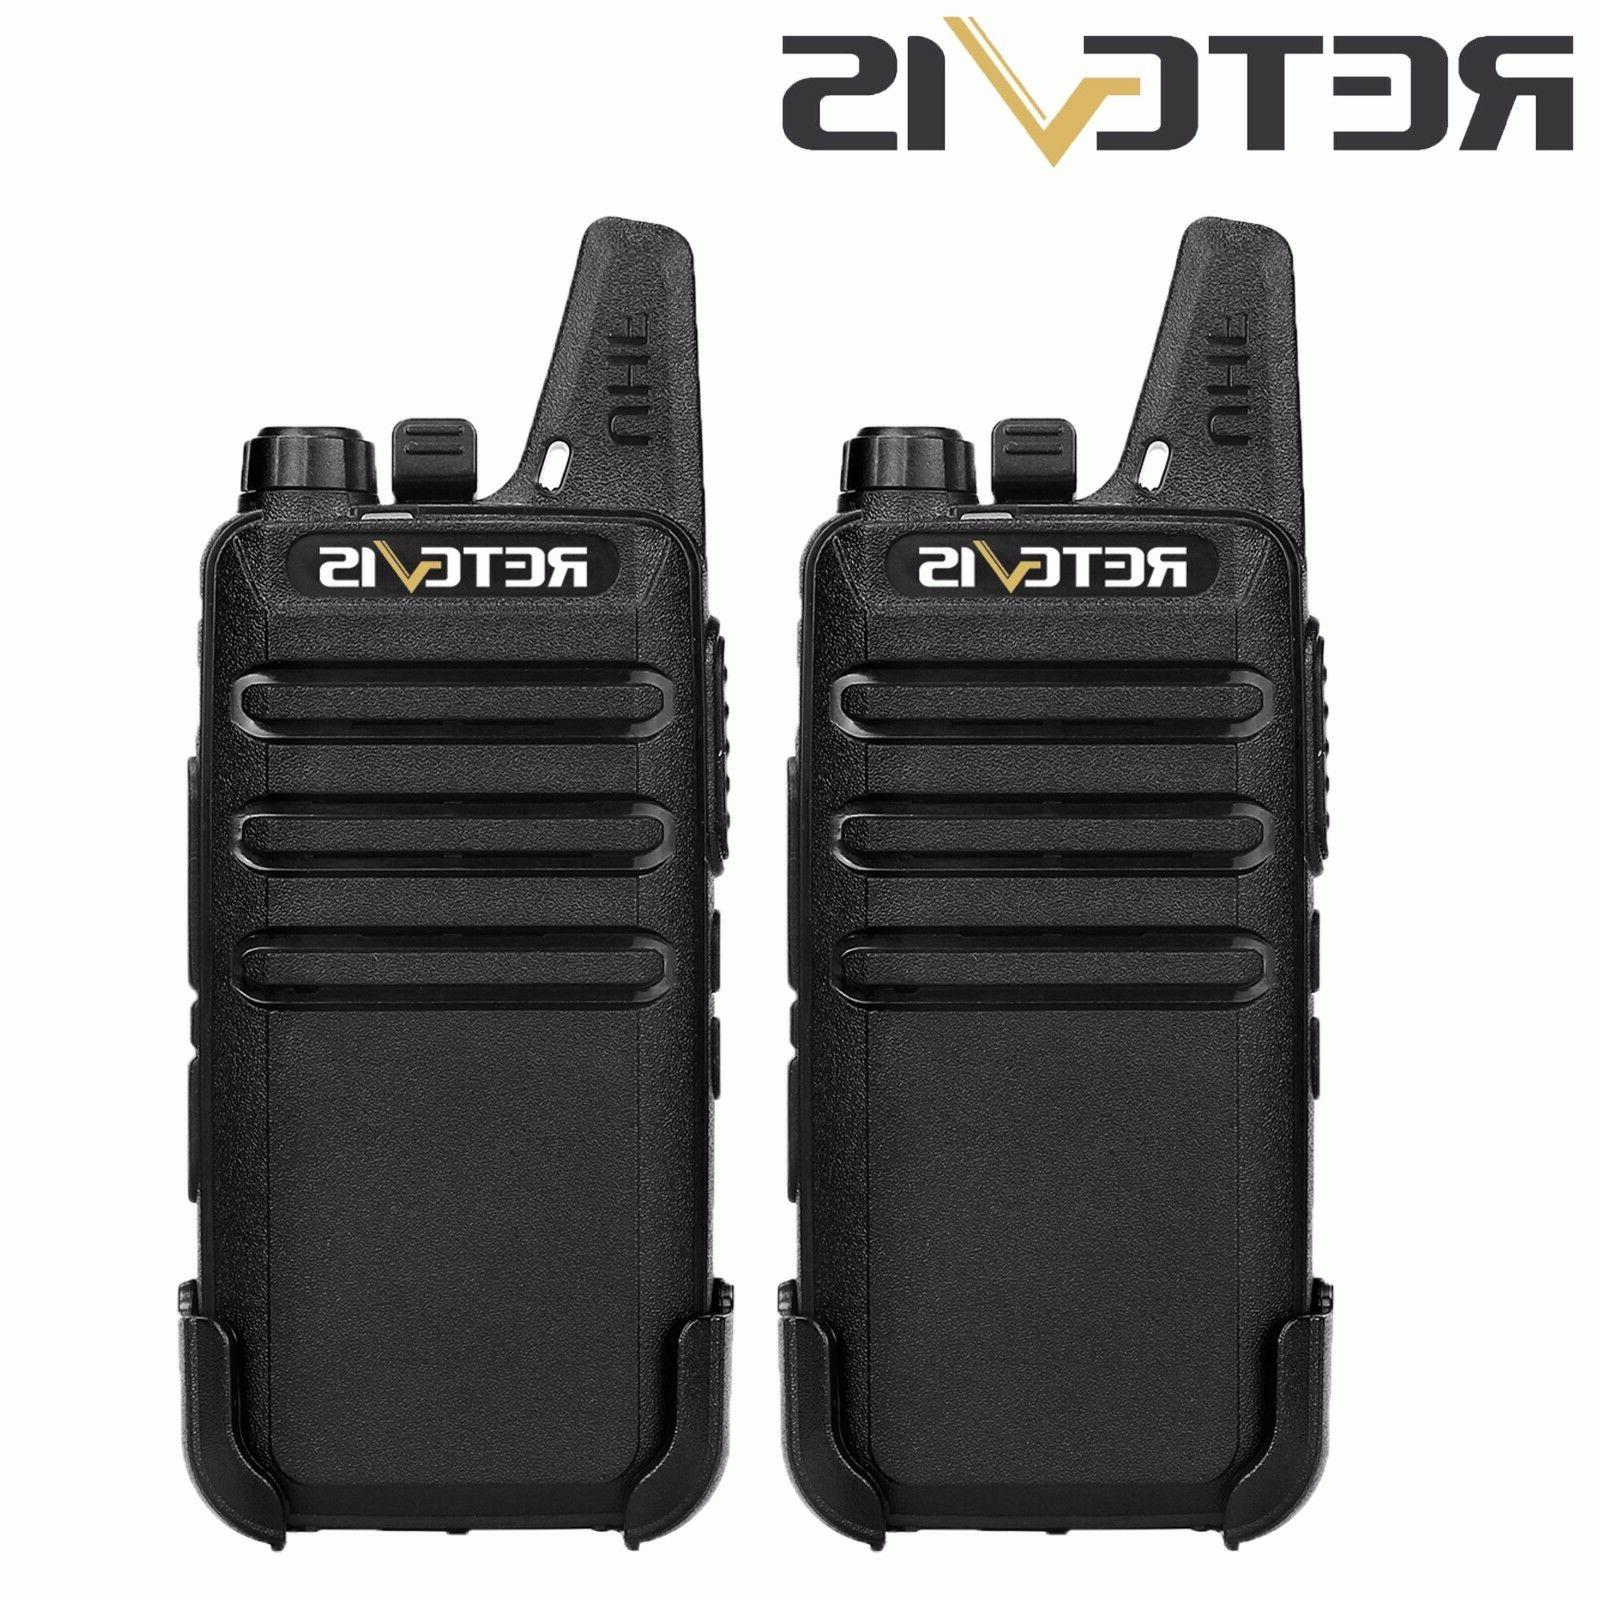 6pcs FRS RT22 Walkie Talkies DCS 16CH 2W Charger